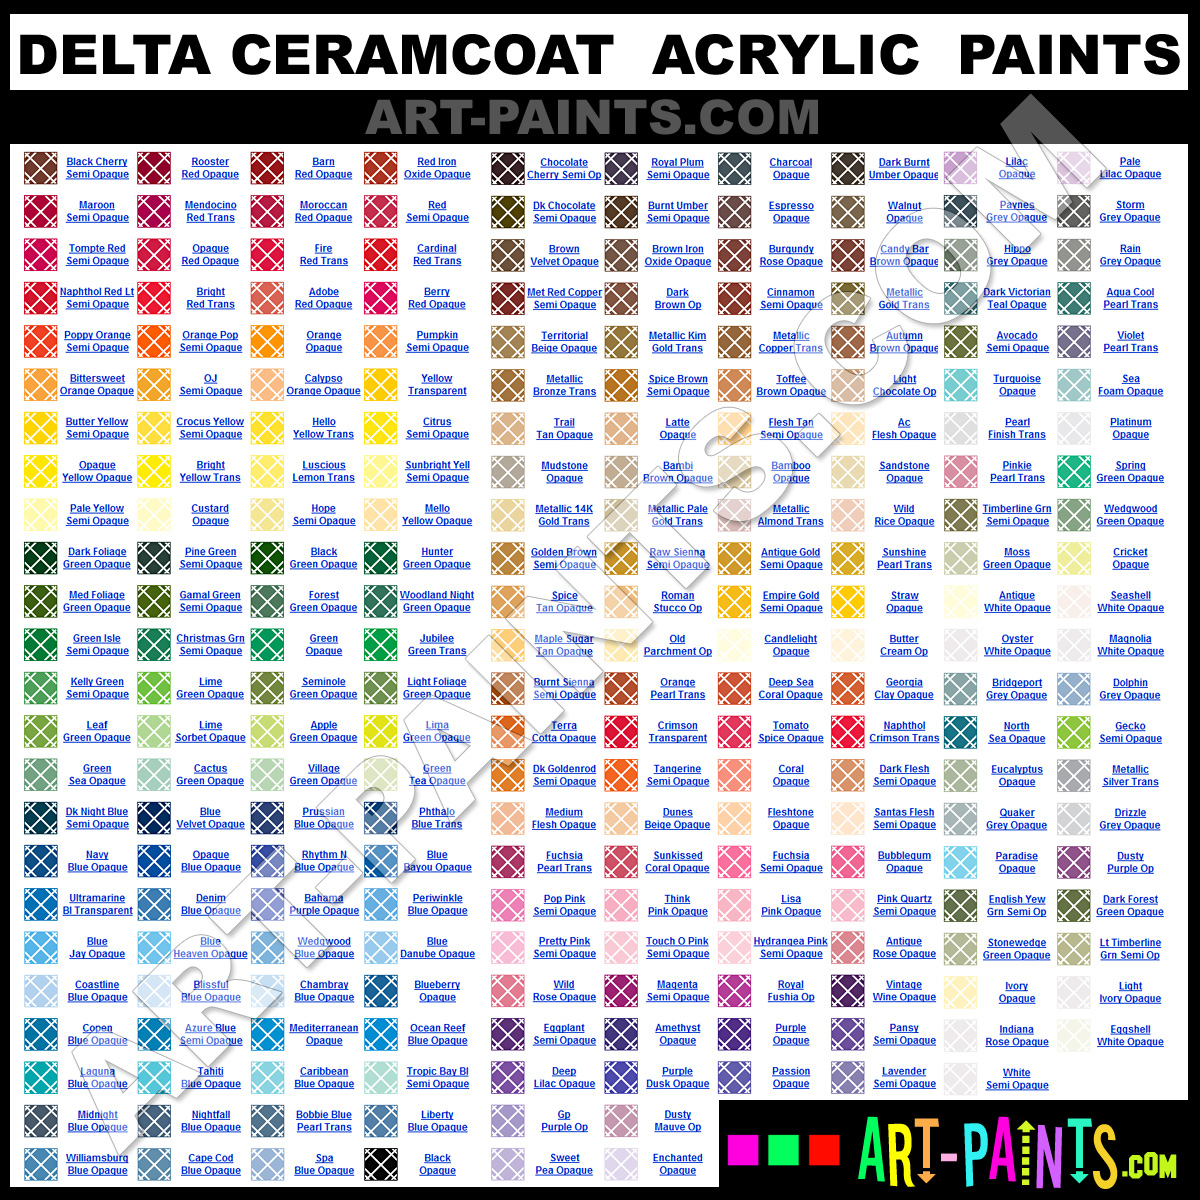 Ceramcoat delta acrylic paint colors ceramcoat delta paint delta acrylics delta ceramcoat paints geenschuldenfo Gallery